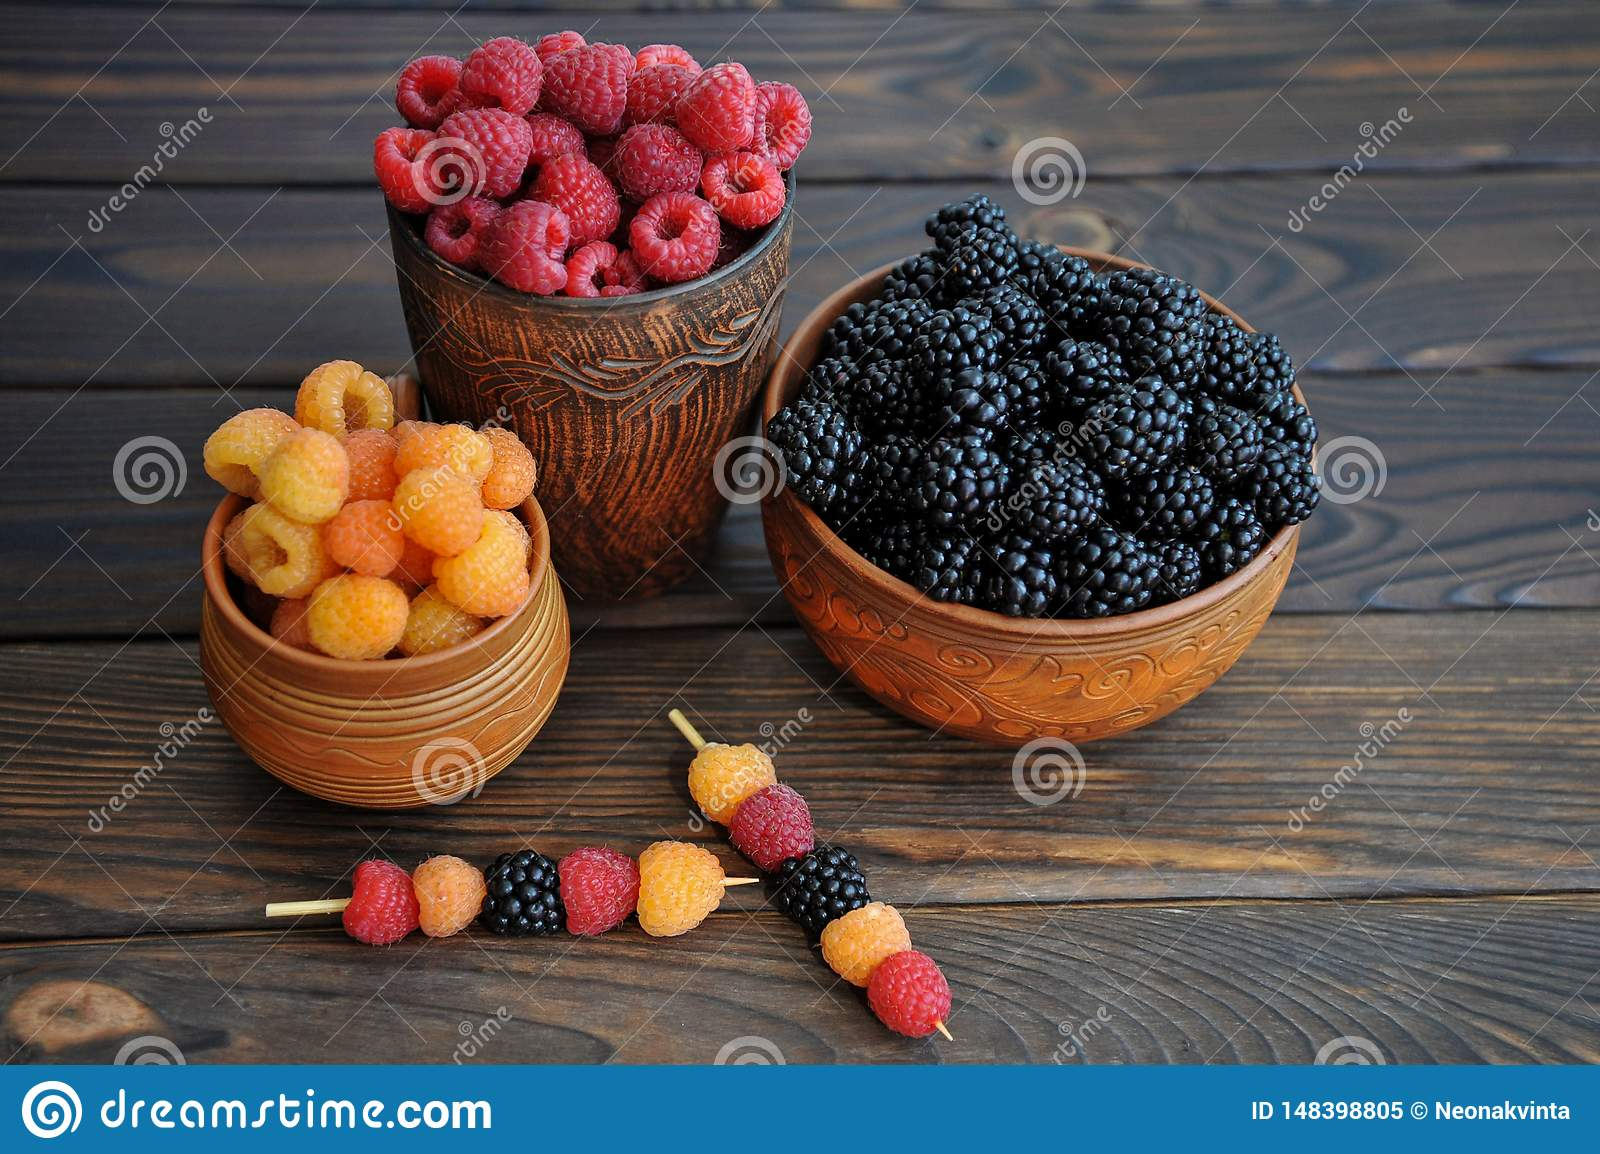 Colored berries of red, yellow and black raspberries or blackberries in earthenware on a table